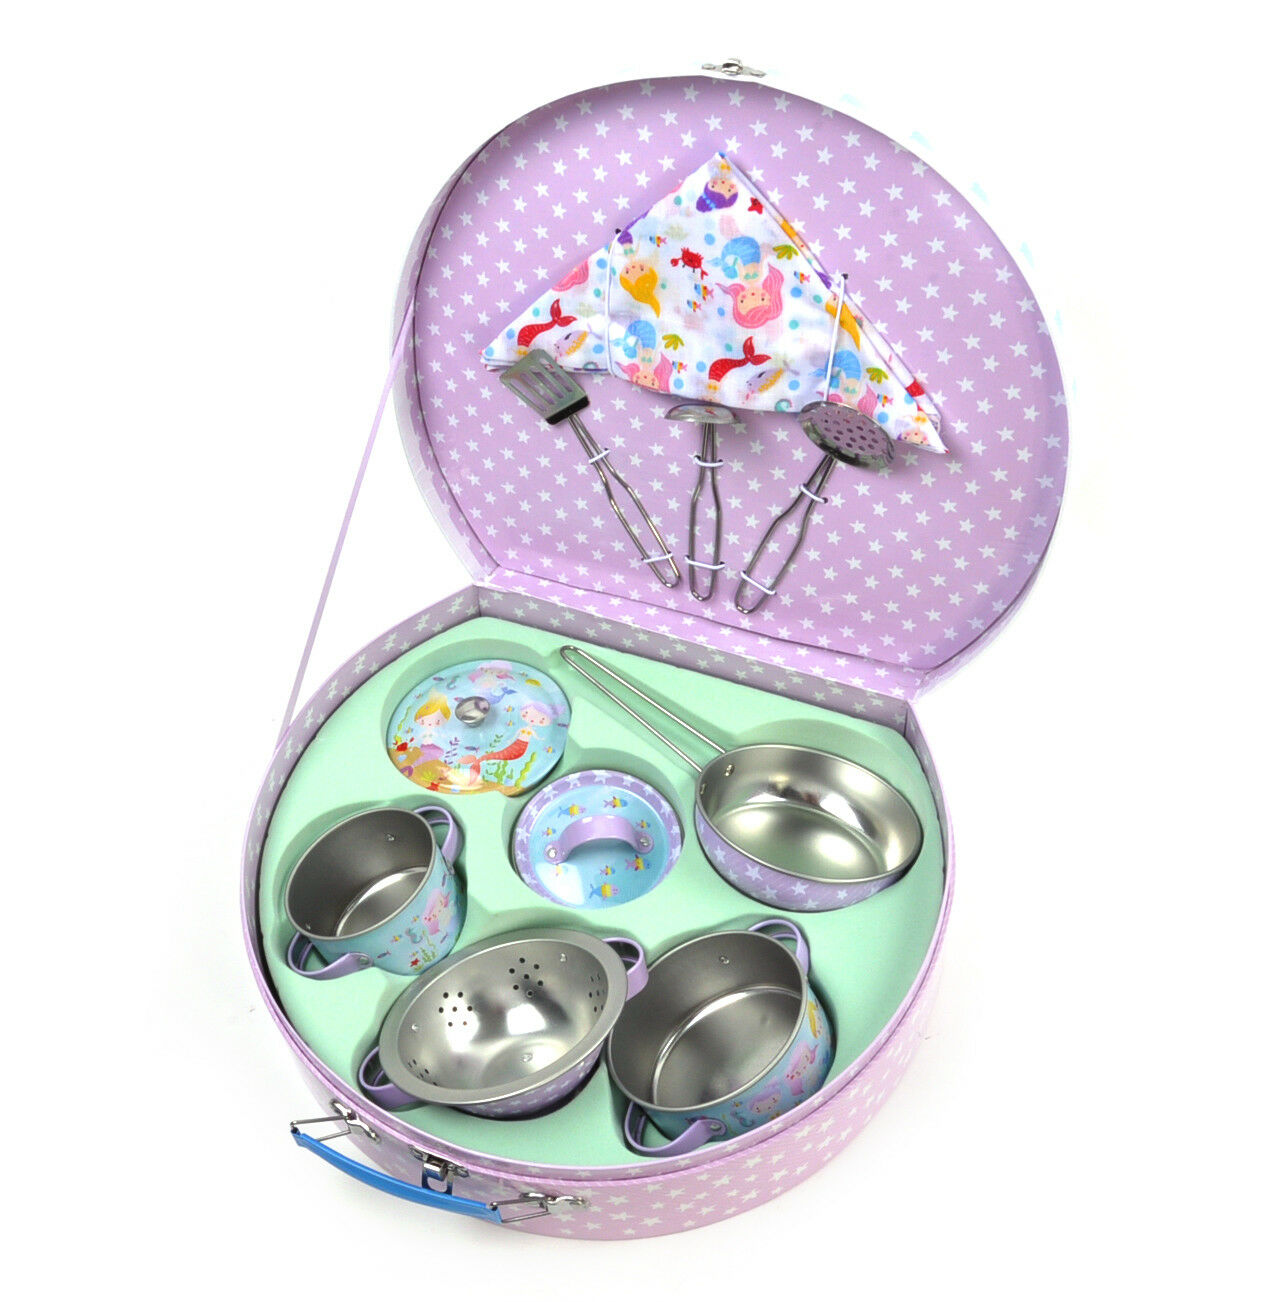 Mermaid Chef's Kitchen Set - 10pc Miniature Cooking Set in Round Case